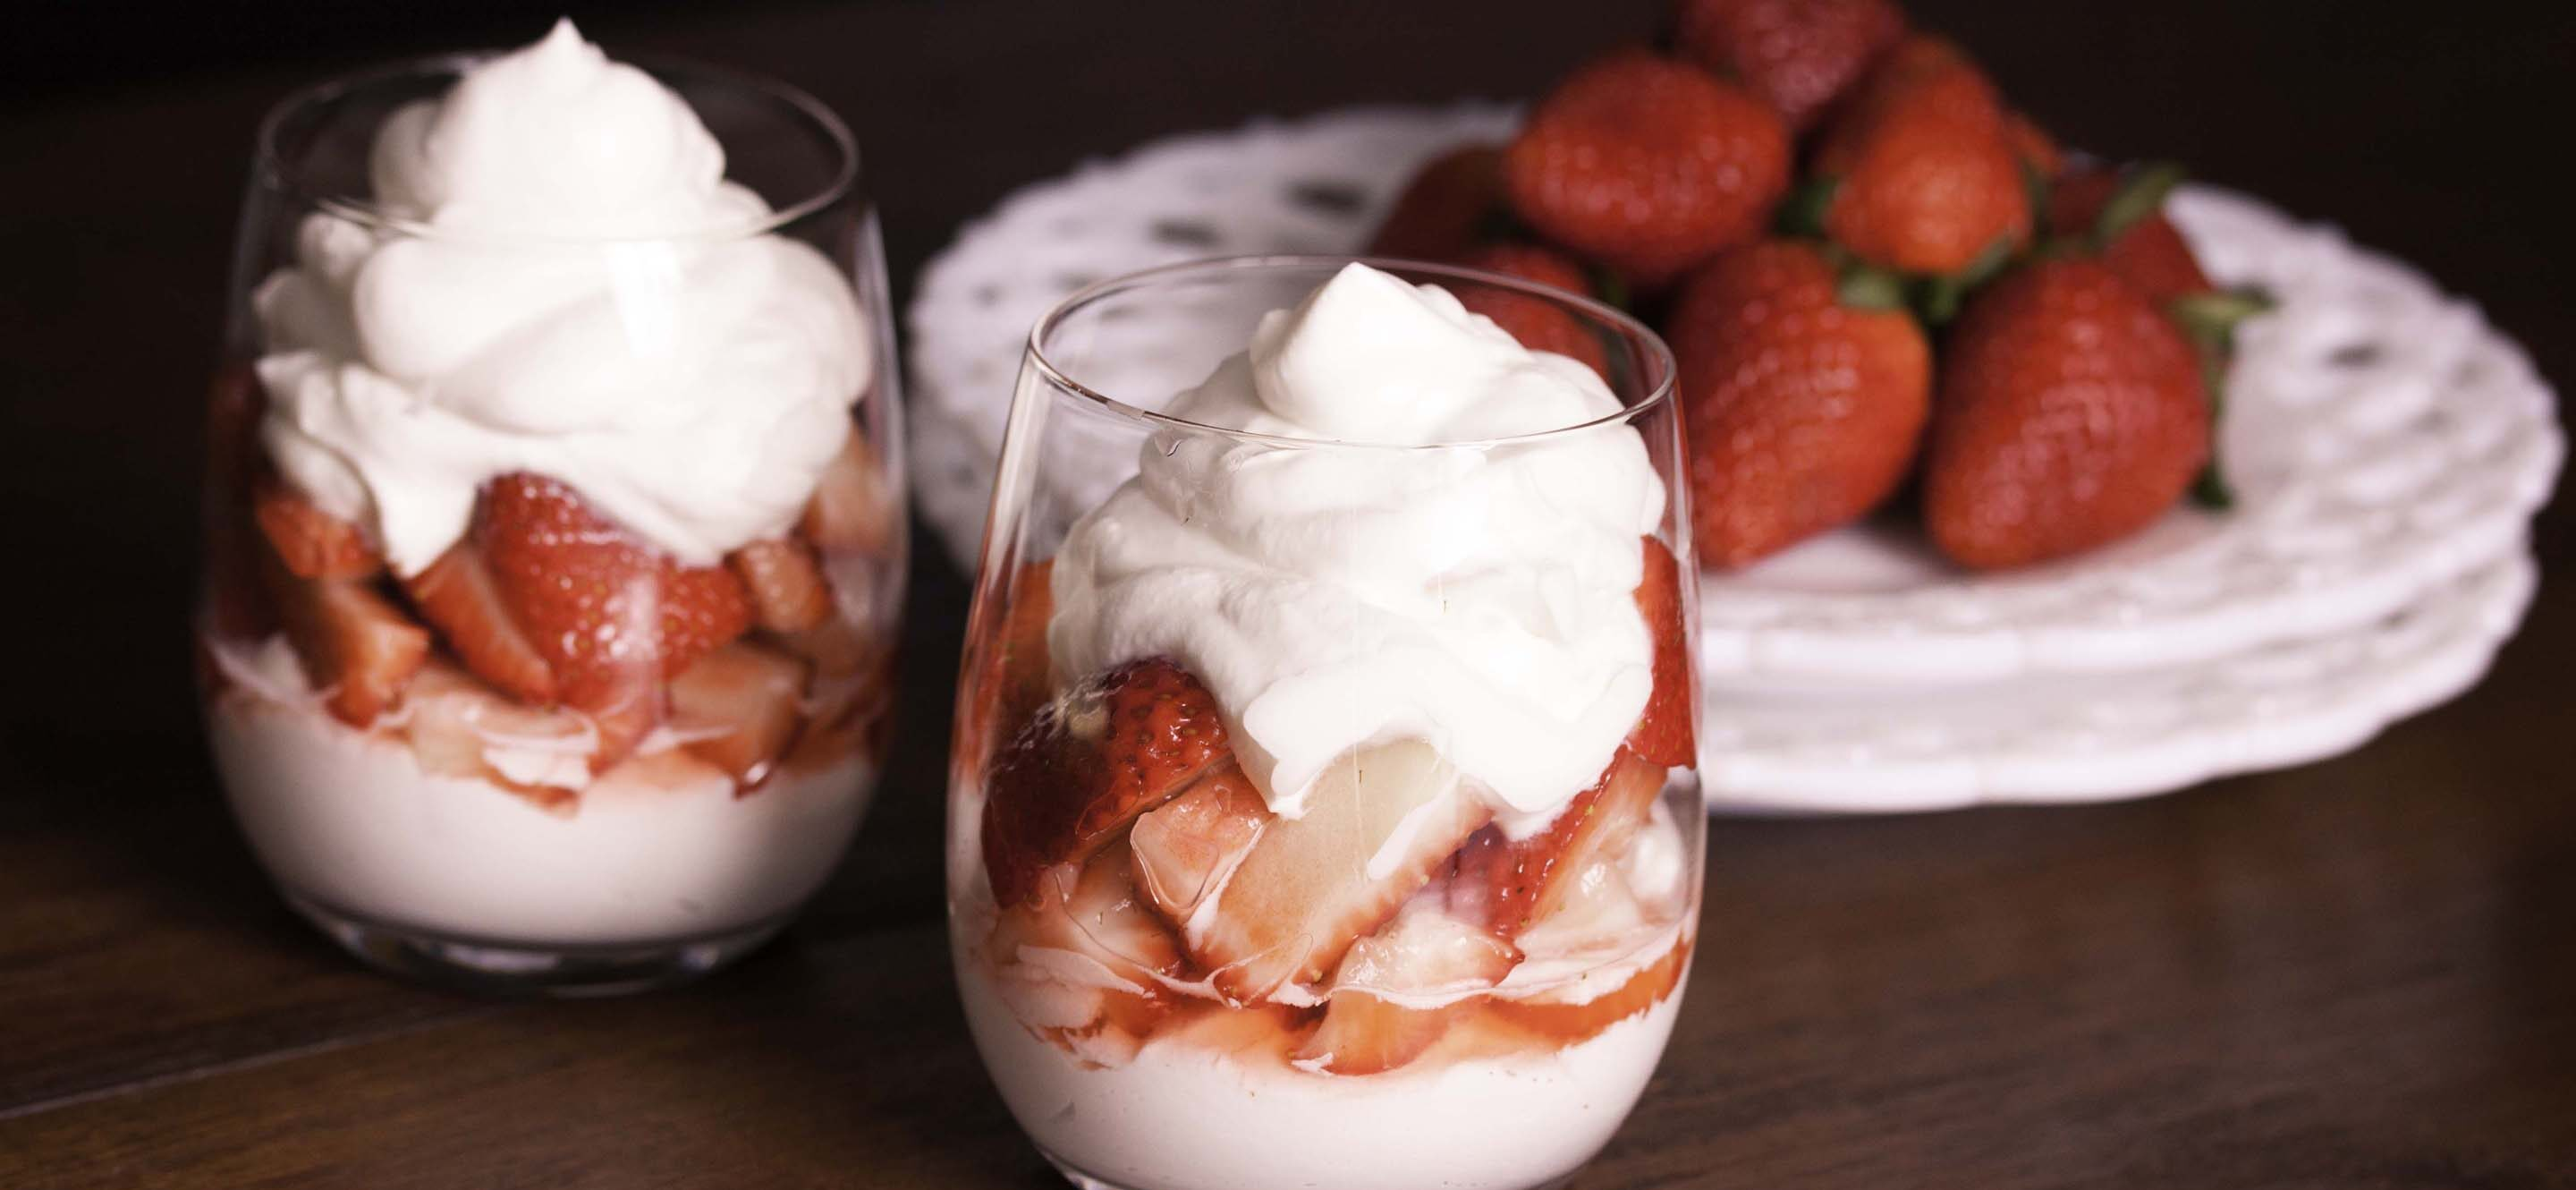 strawberries chantilly